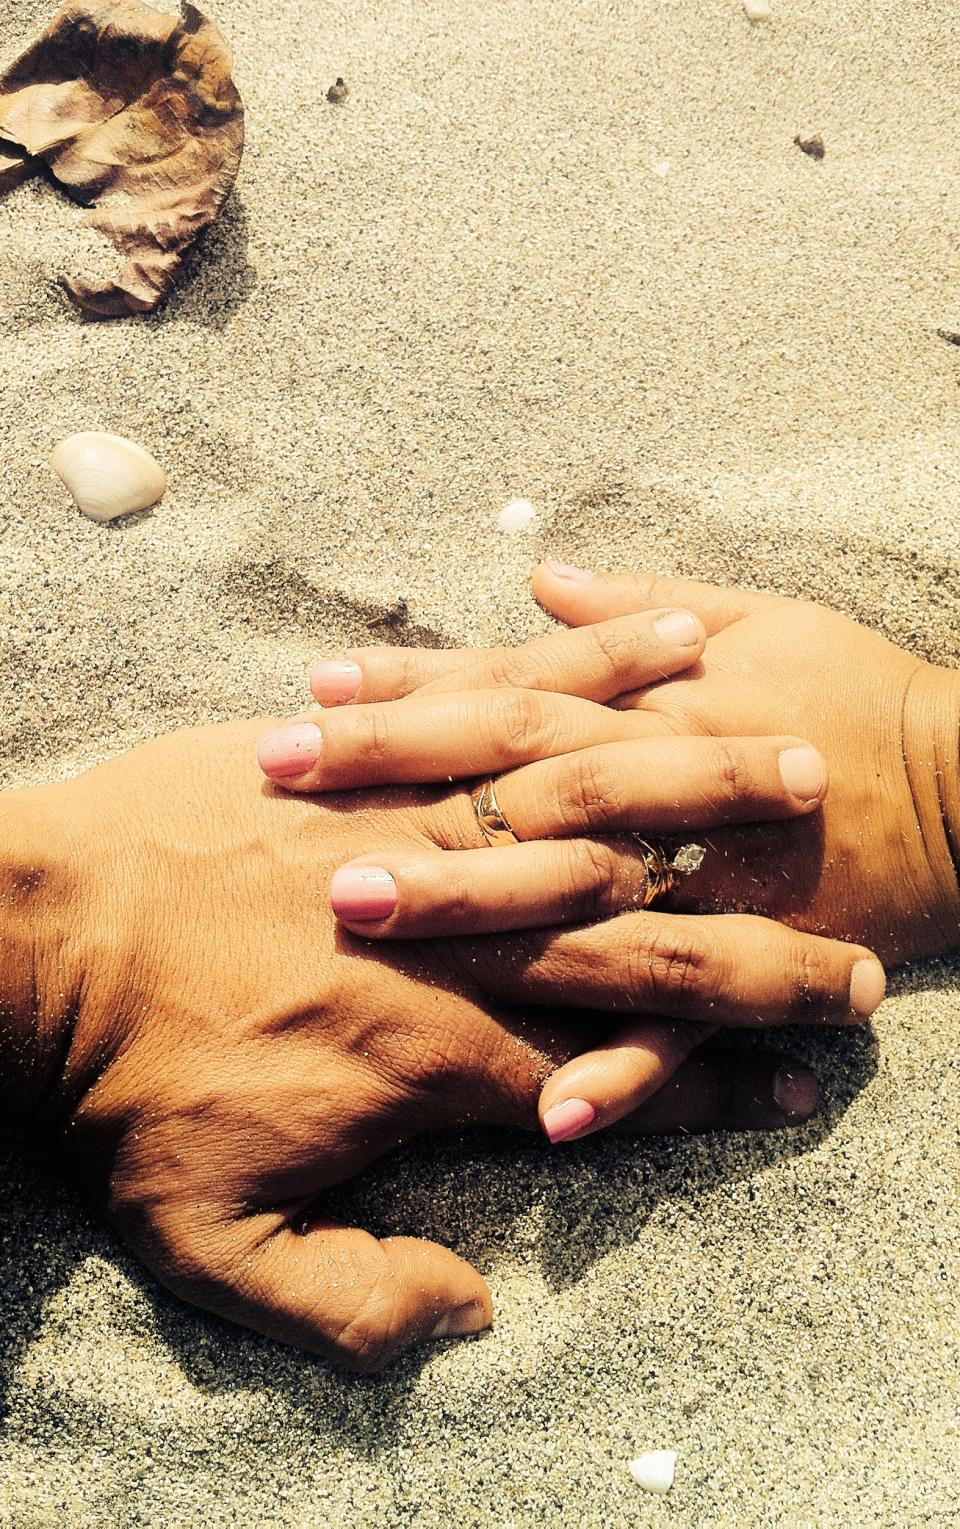 holding hands, engagement, wedding rings, love, romance, romantic, sand